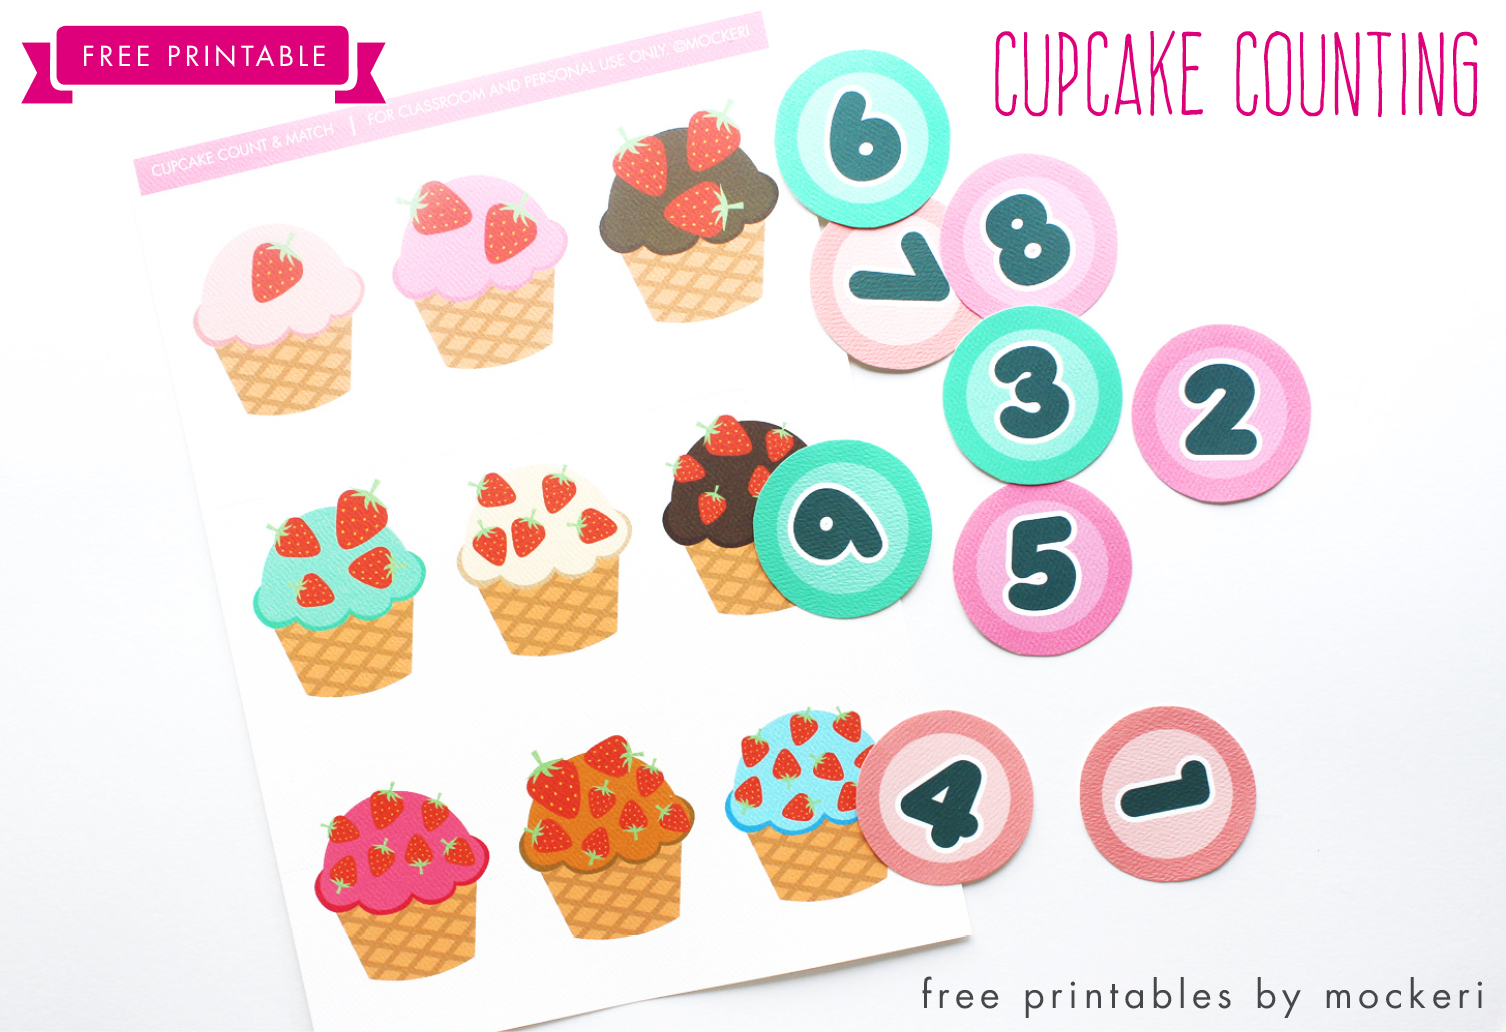 CupcakeCounting